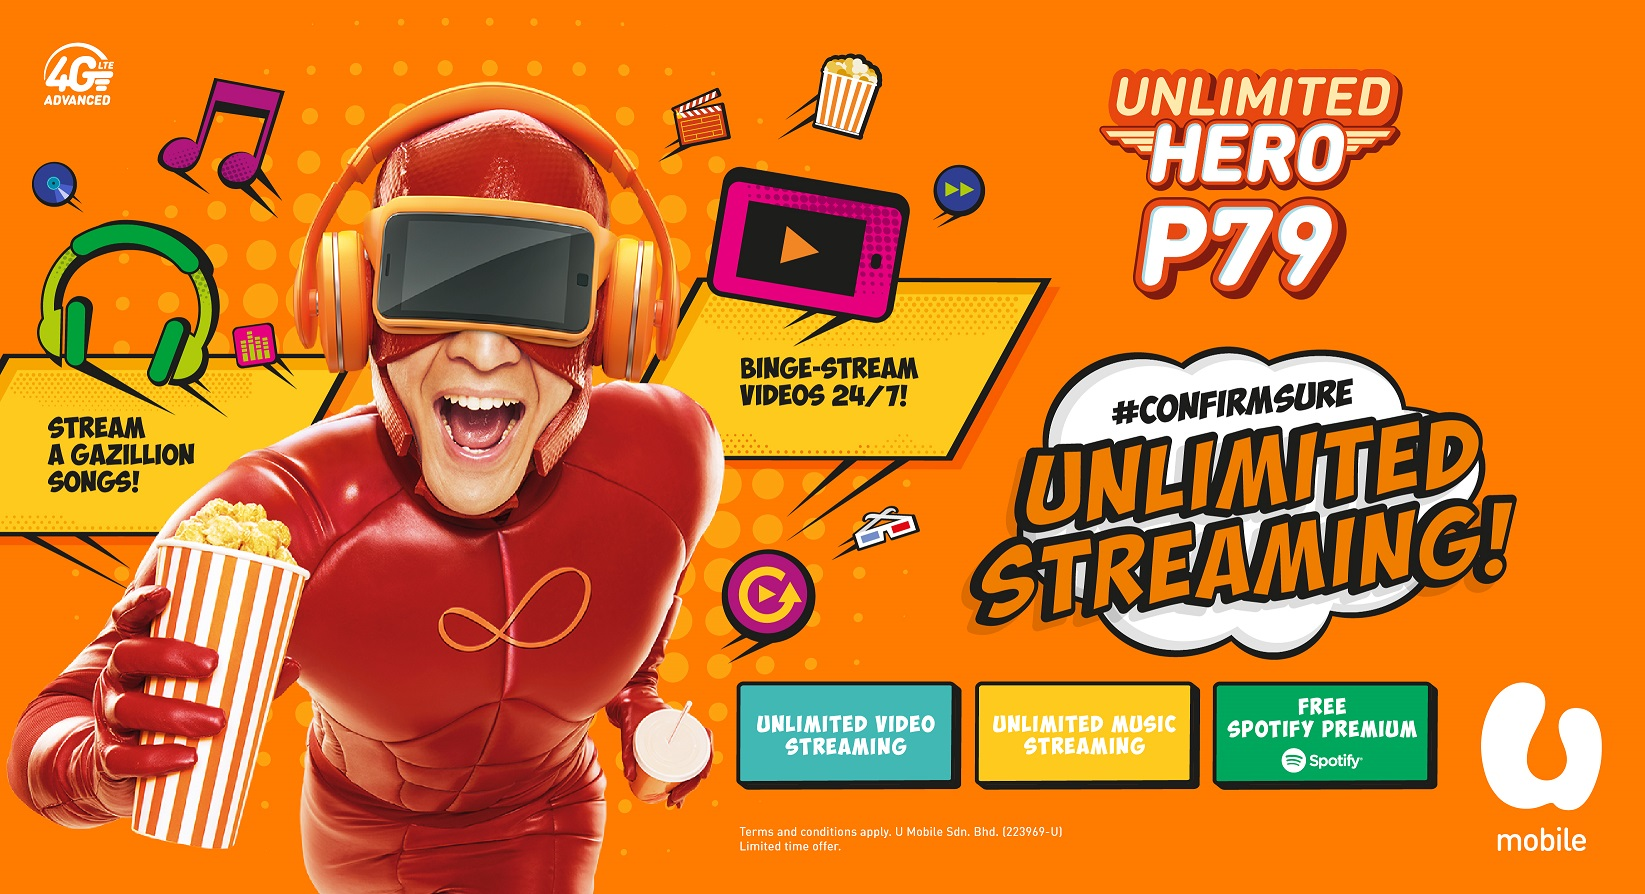 U Mobile's new Unlimited HERO P79 offers 6 months of free Spotify premium subscription